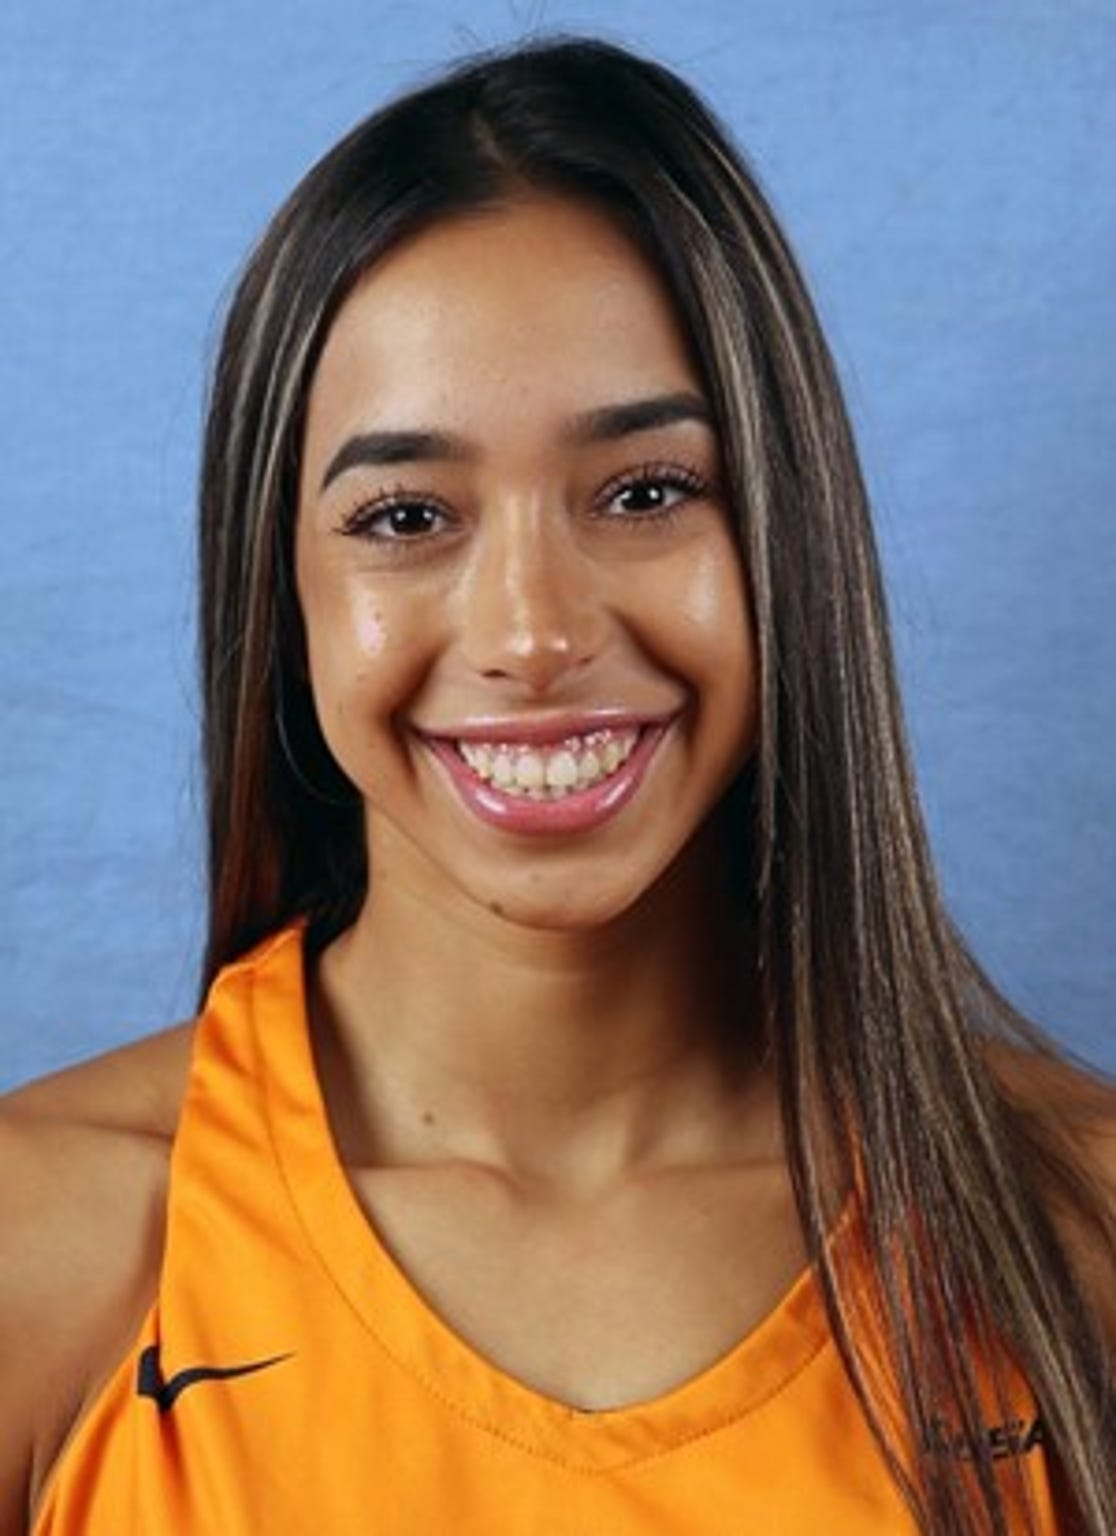 Katia Gallegos is a point guard for the UTEP women's basketball team